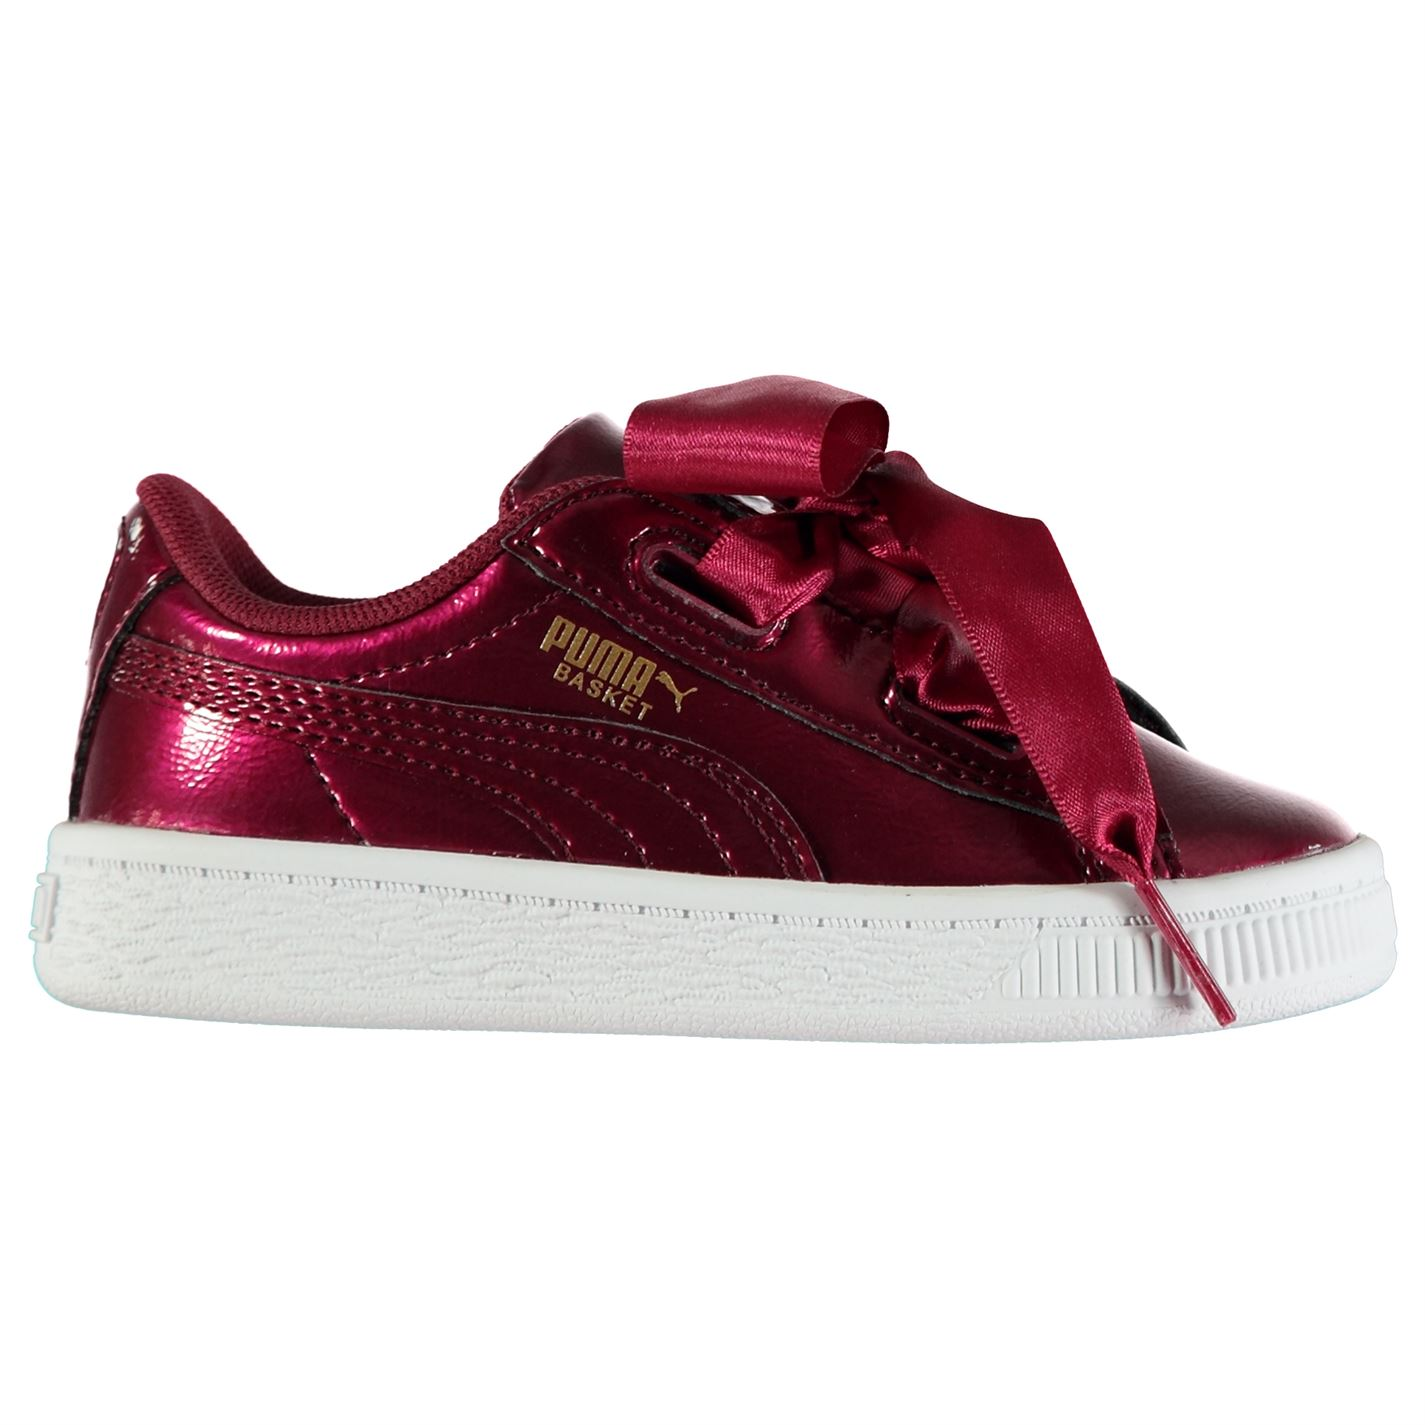 online store 72046 03699 Details about Puma Basket Heart Glam Sneakers Childs Girls Low Laces  Fastened Padded Collar